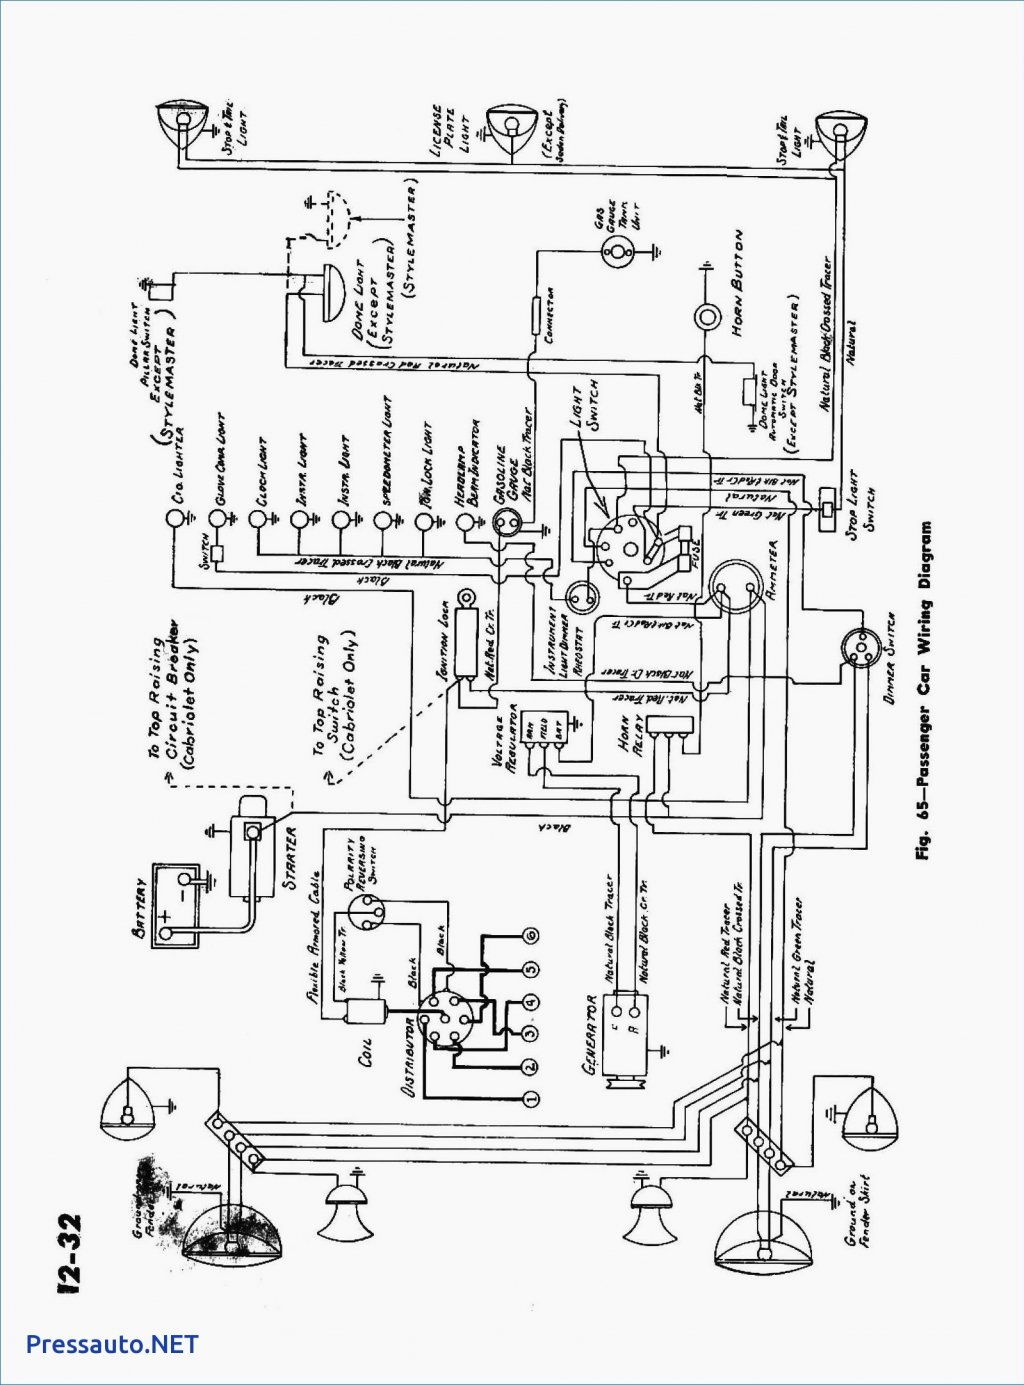 electrical engineer drawing at getdrawings free for personal Schematic Switch Symbols 1024x1385 how to read a wiring diagram symbols choice image